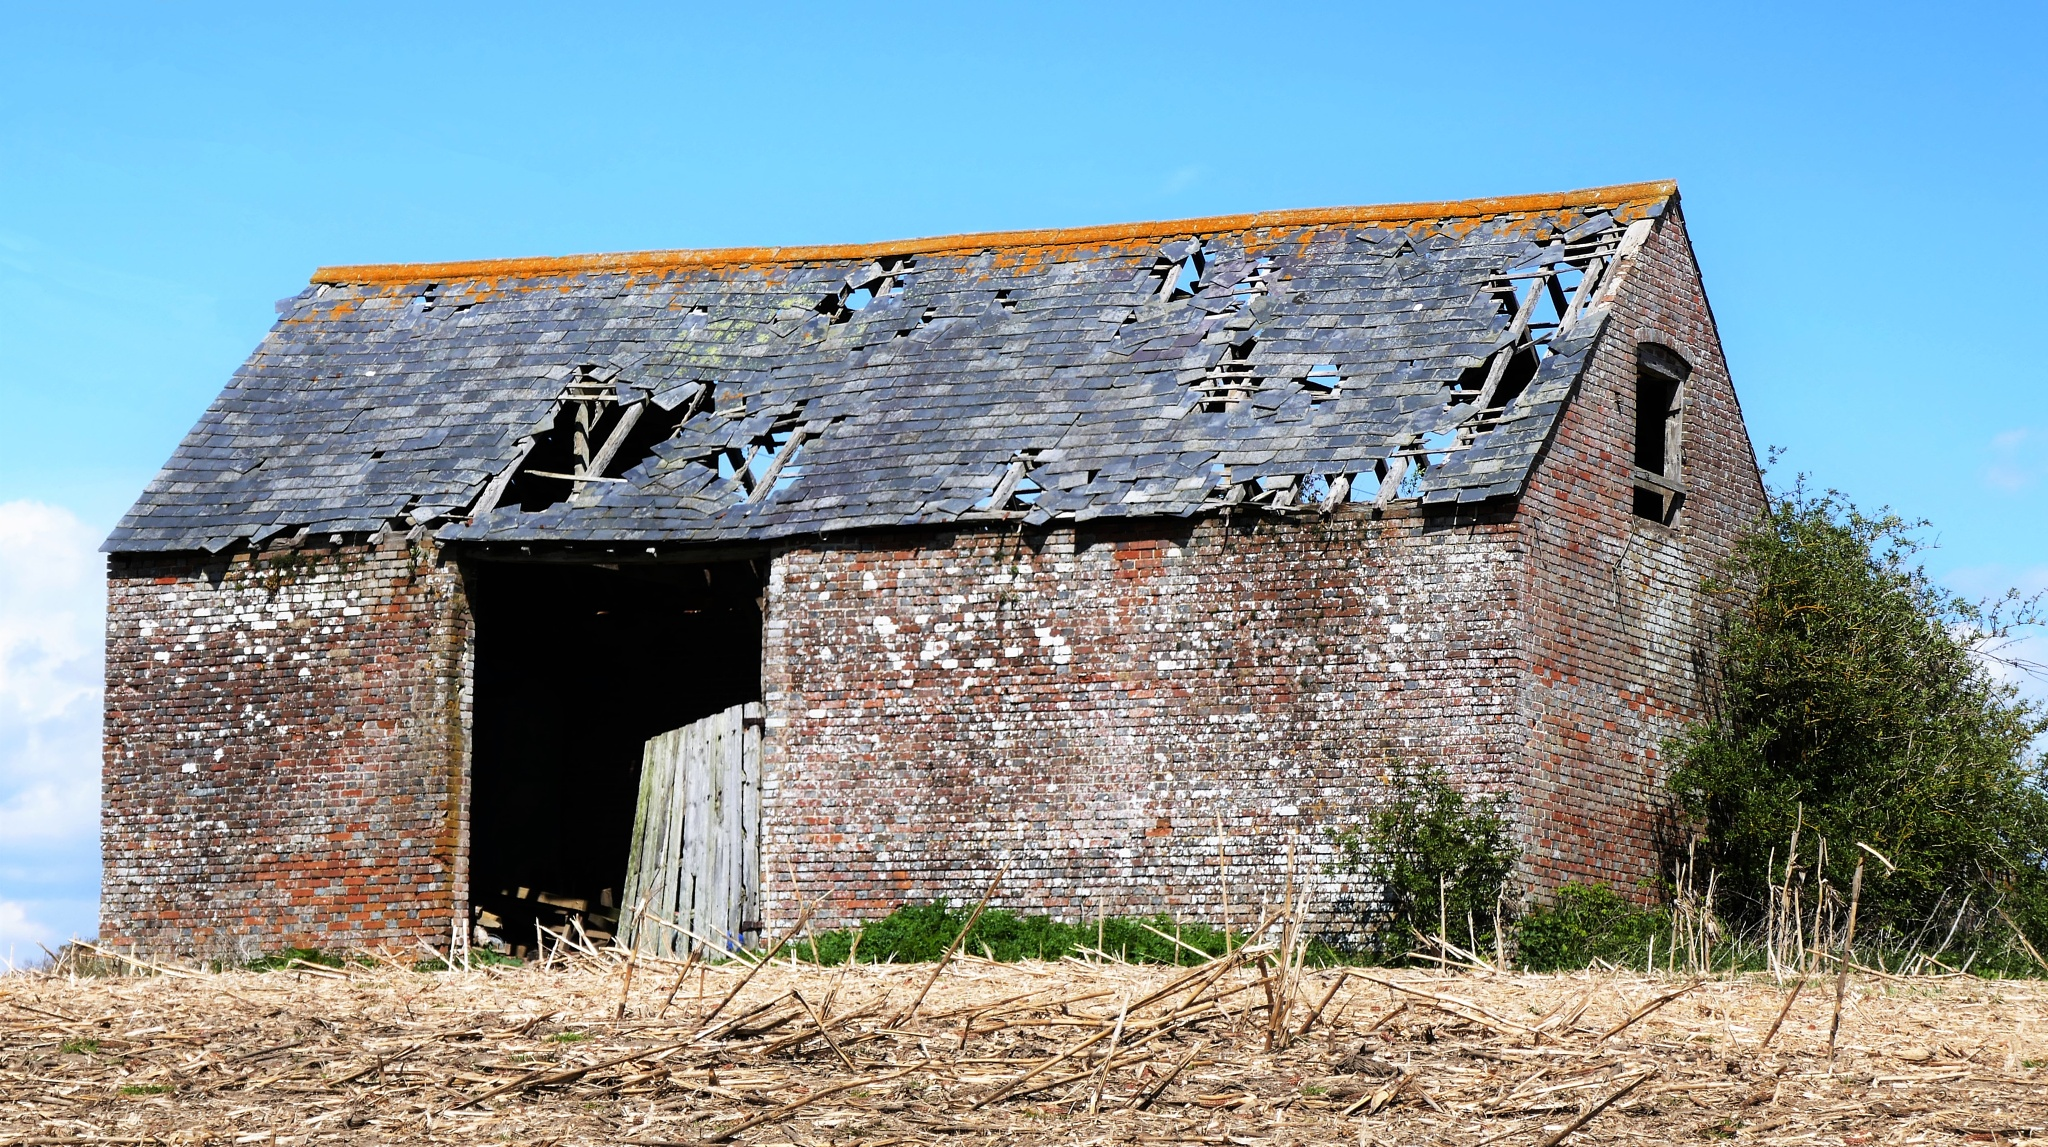 Derelict Barn Front View by William J Rees